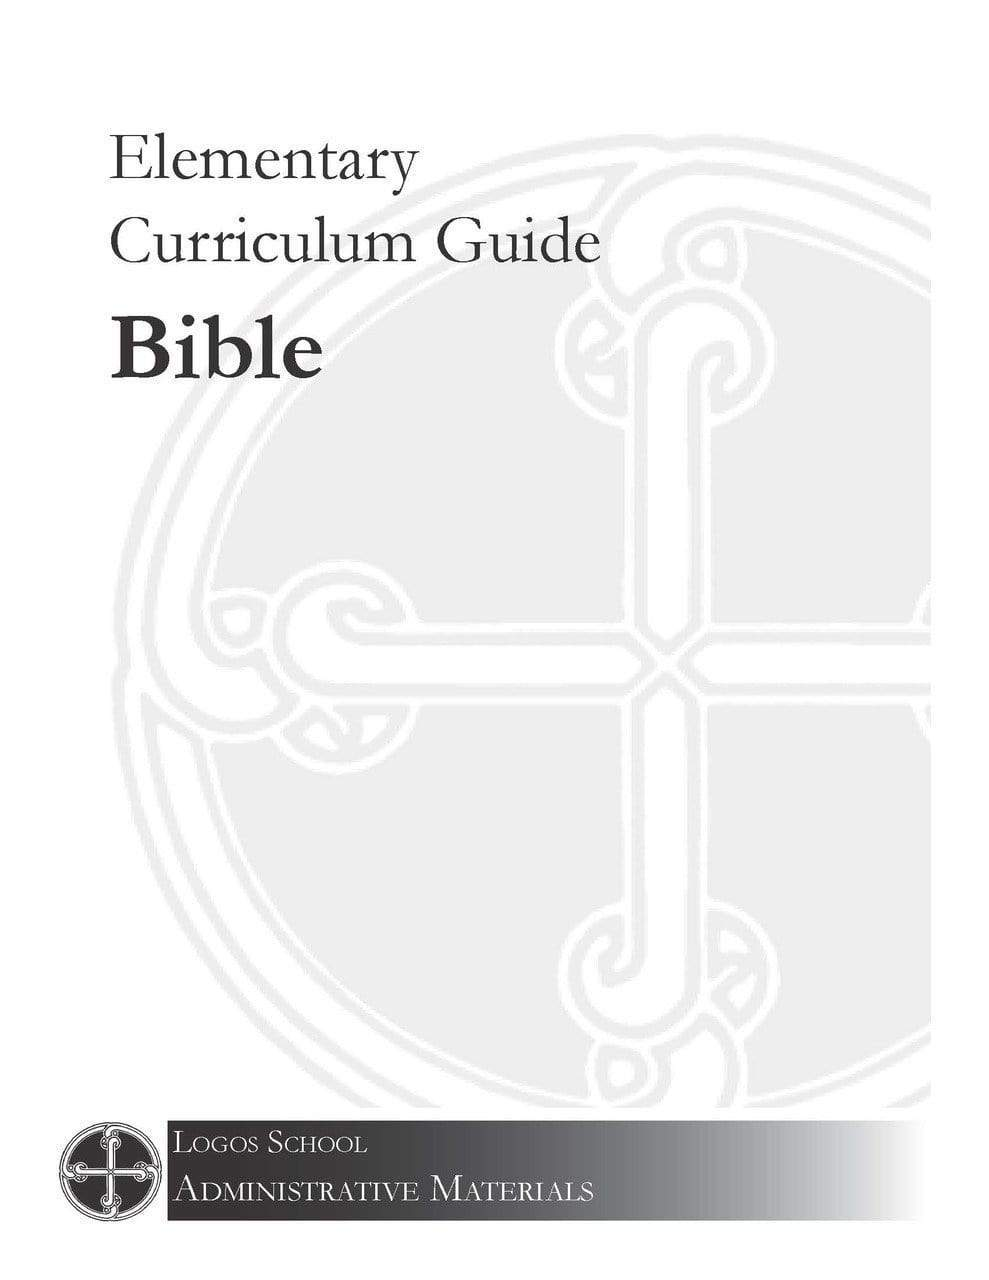 Elementary Curriculum Guide – Bible (Download)